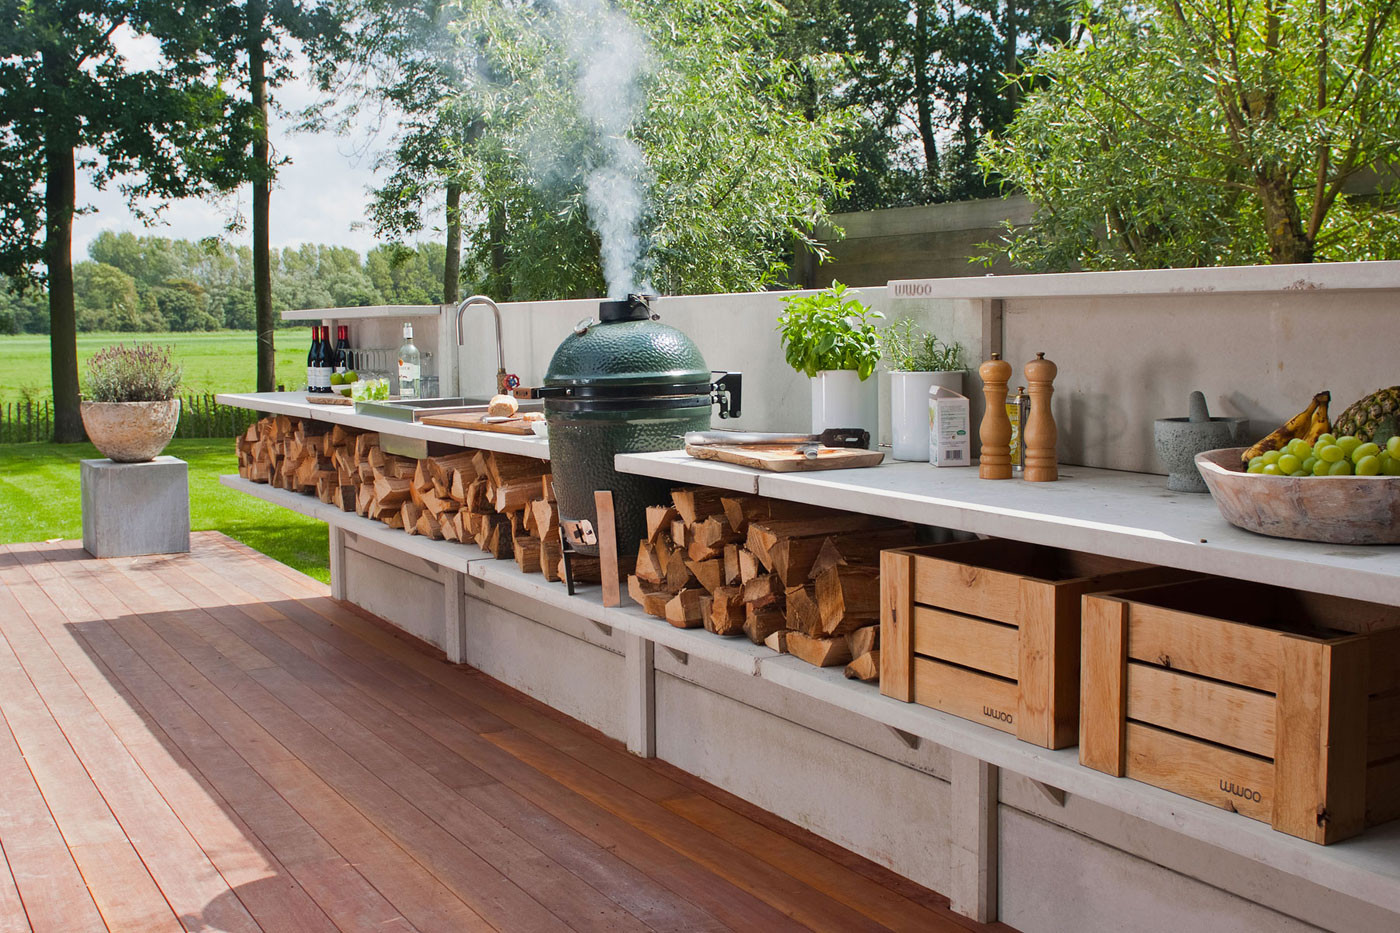 Best ideas about Outdoor Kitchen Diy . Save or Pin 15 Outdoor Kitchen Designs That You Can Help DIY Now.